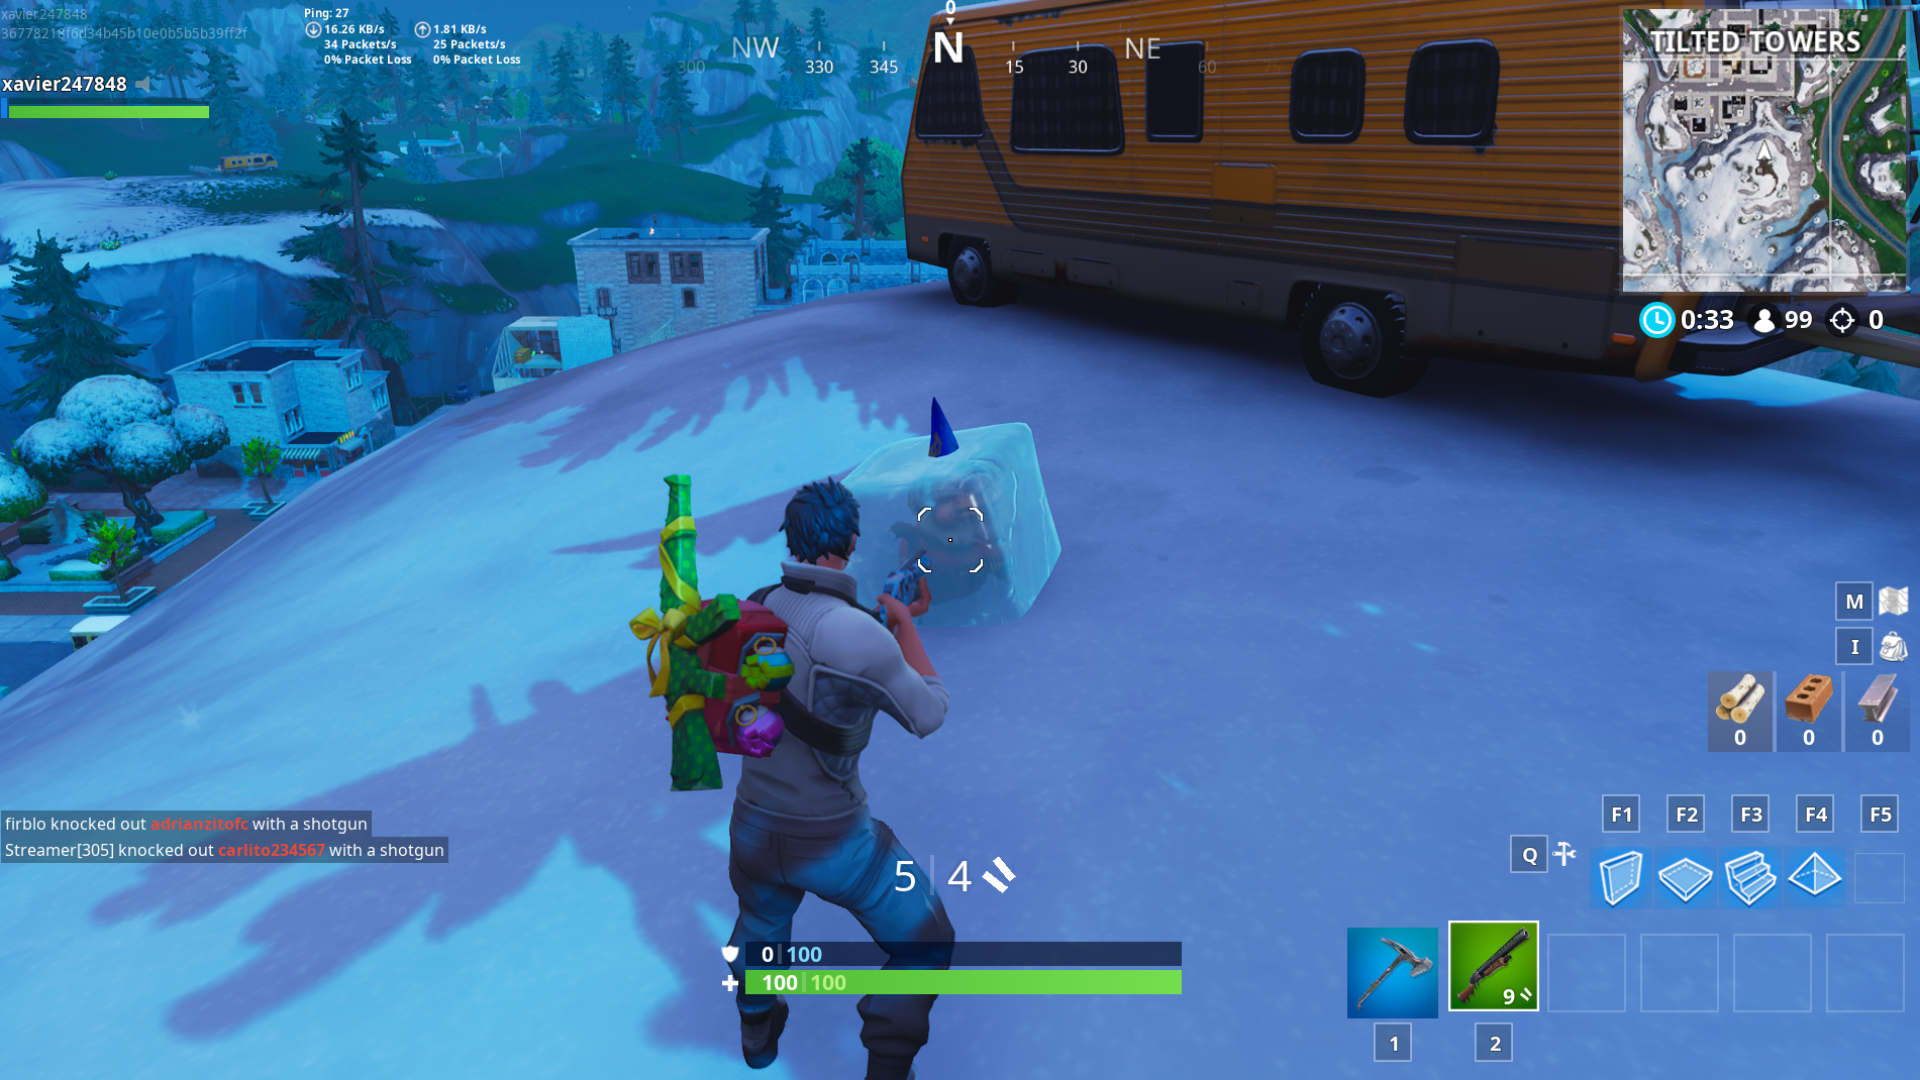 Fortnite Chilly Gnomes Locations Where To Search Chilly Gnomes